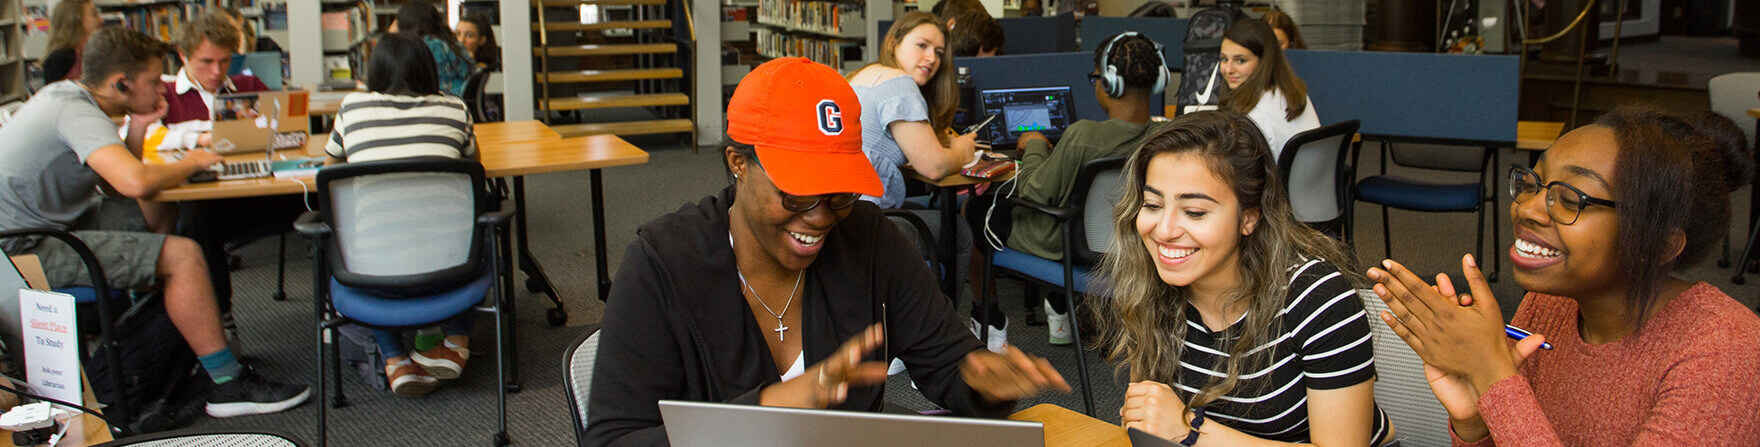 Admissions Upper School students working together in library